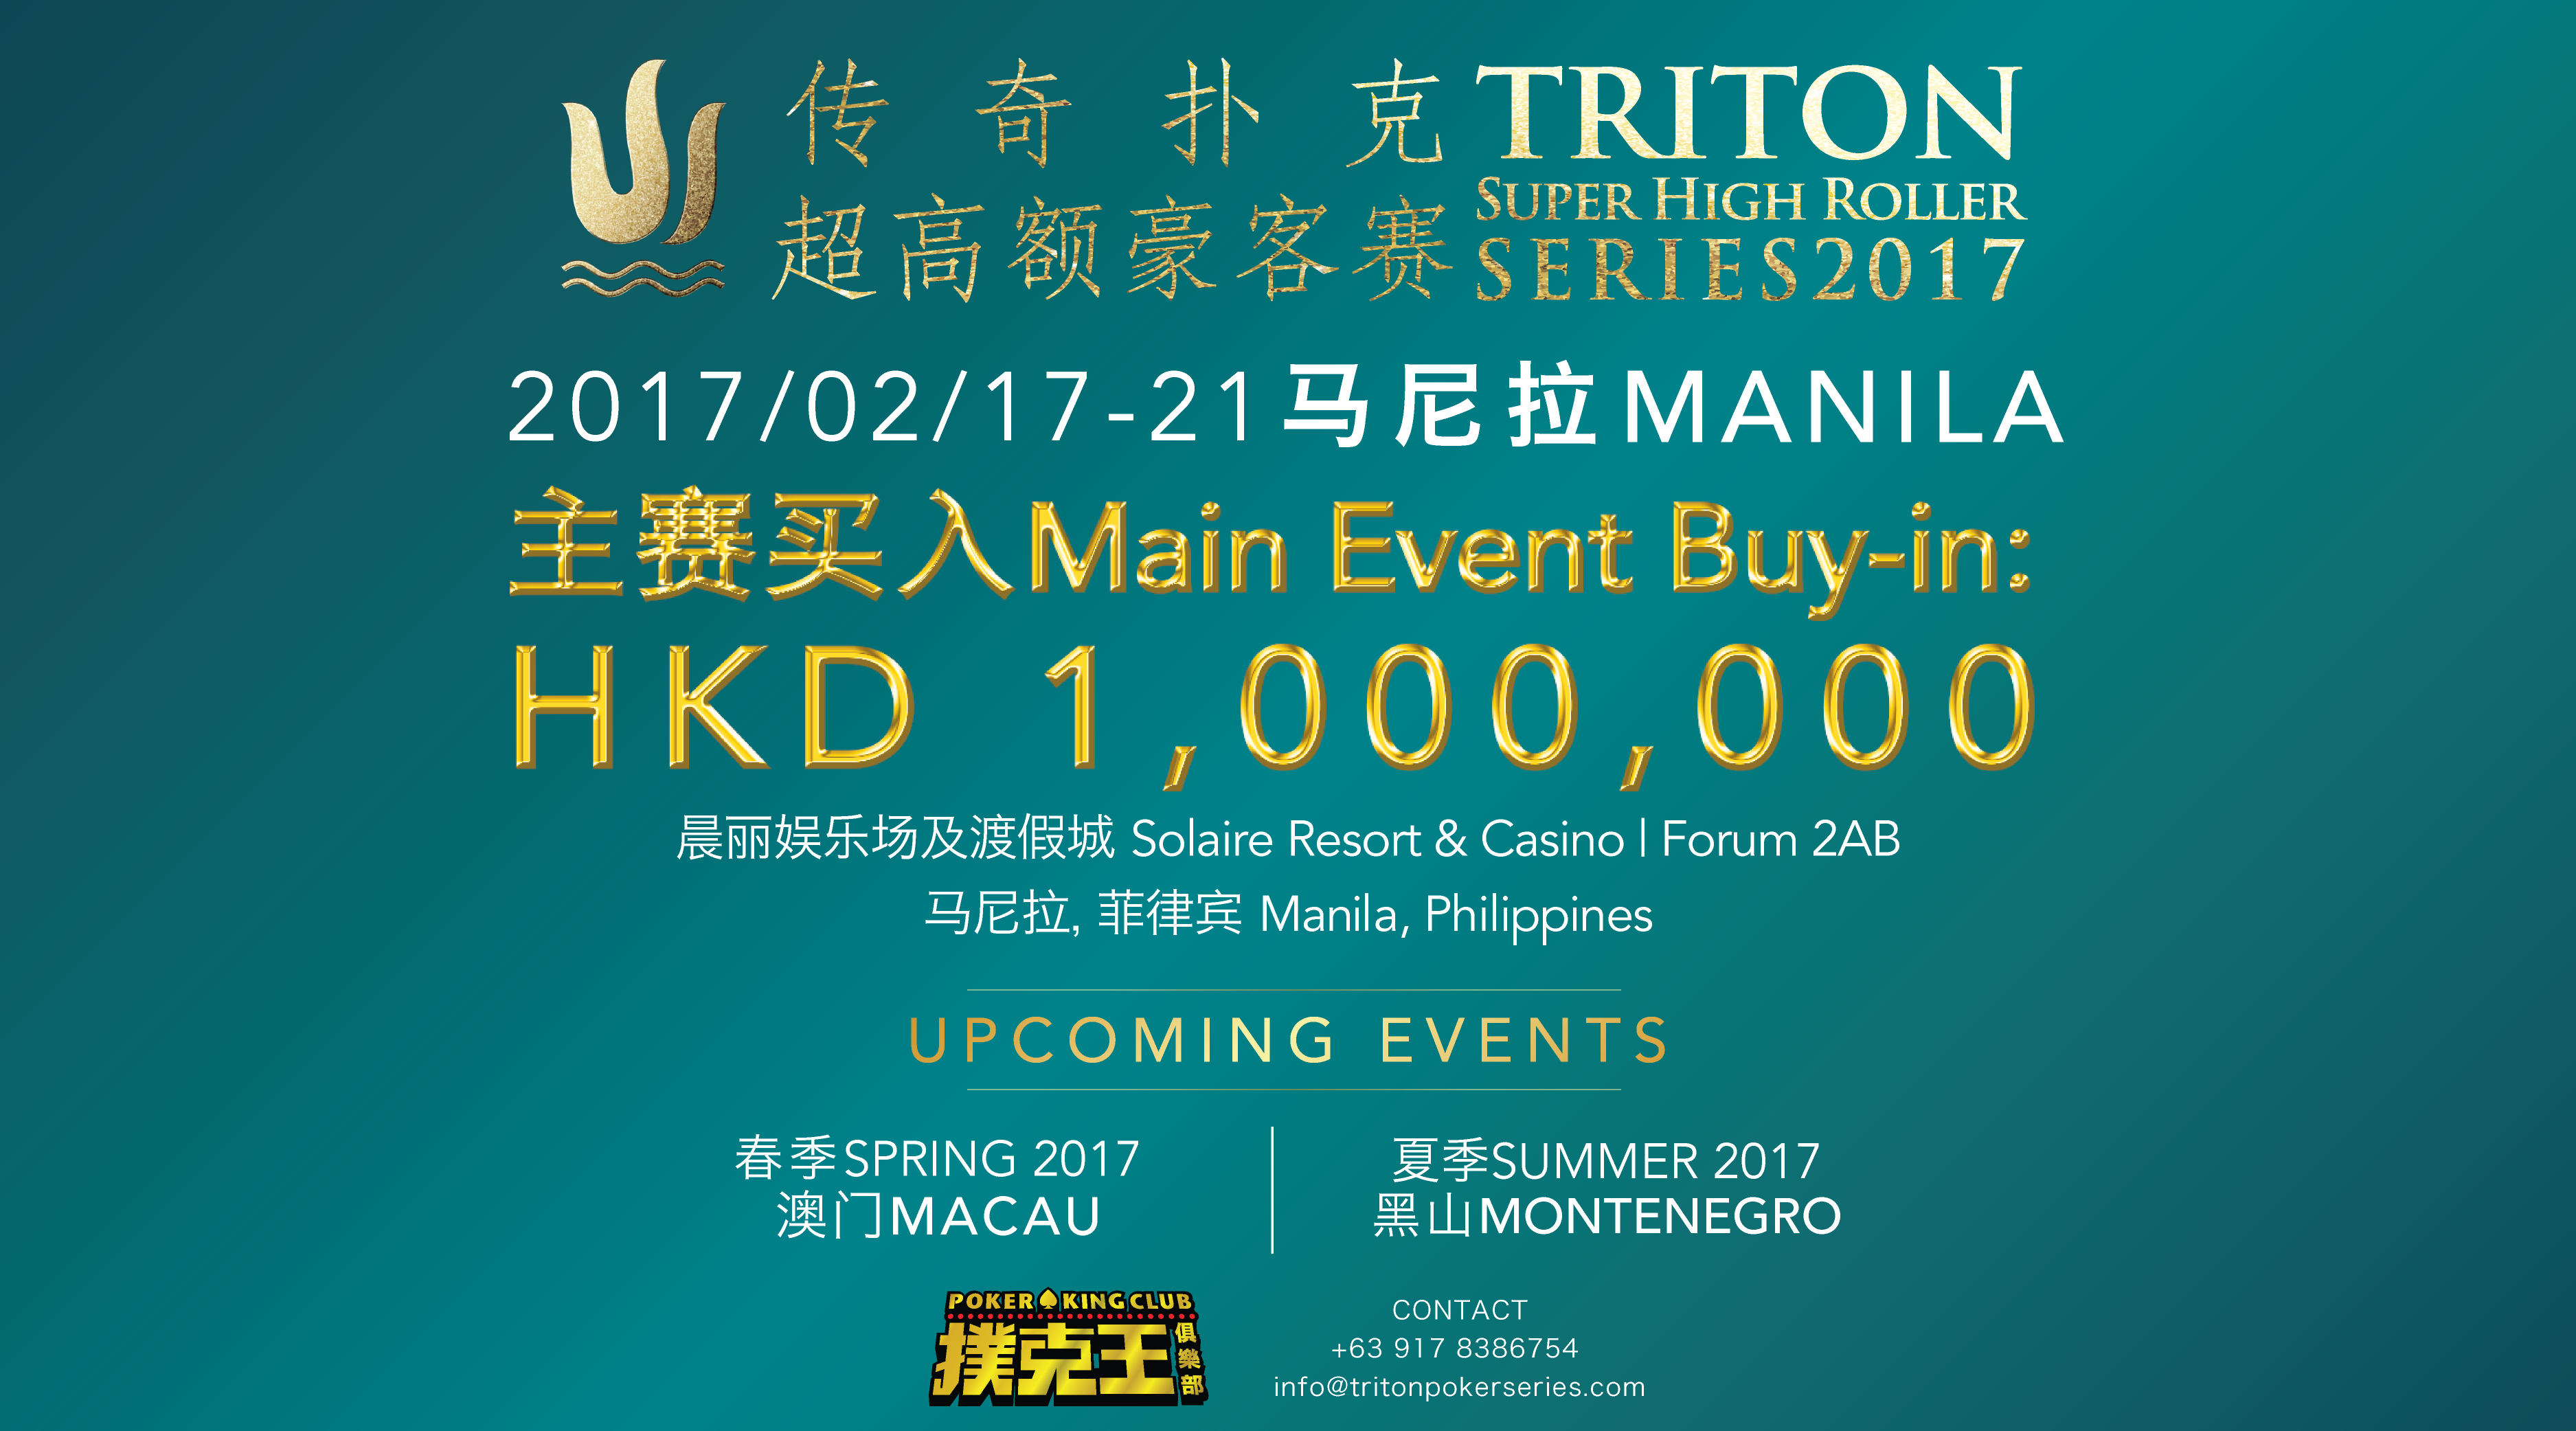 Triton High Roller Series Kicks Off in Manila Feb. 17 101